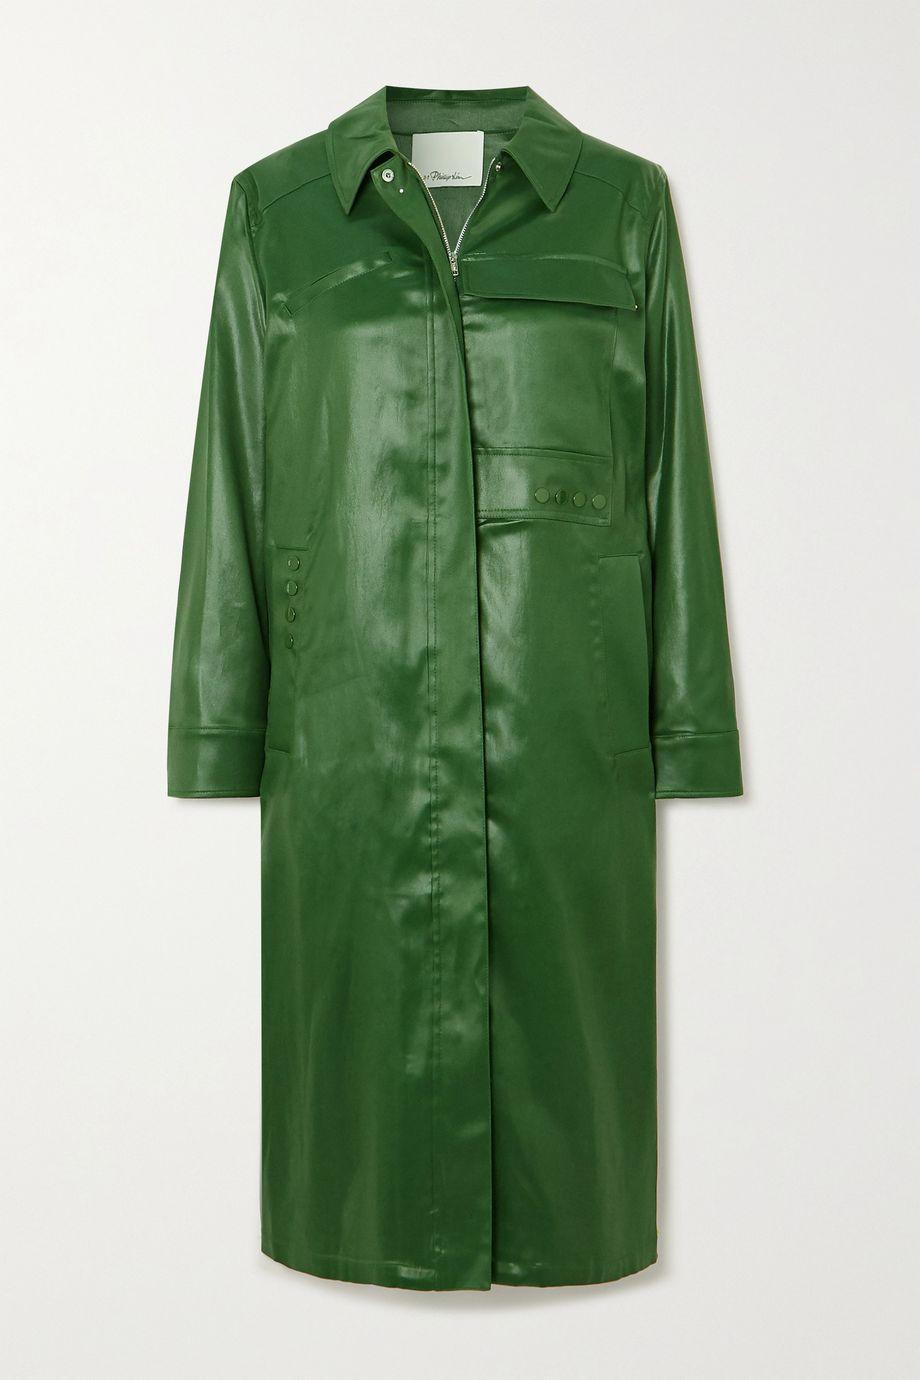 3.1 Phillip Lim Coated-shell coat